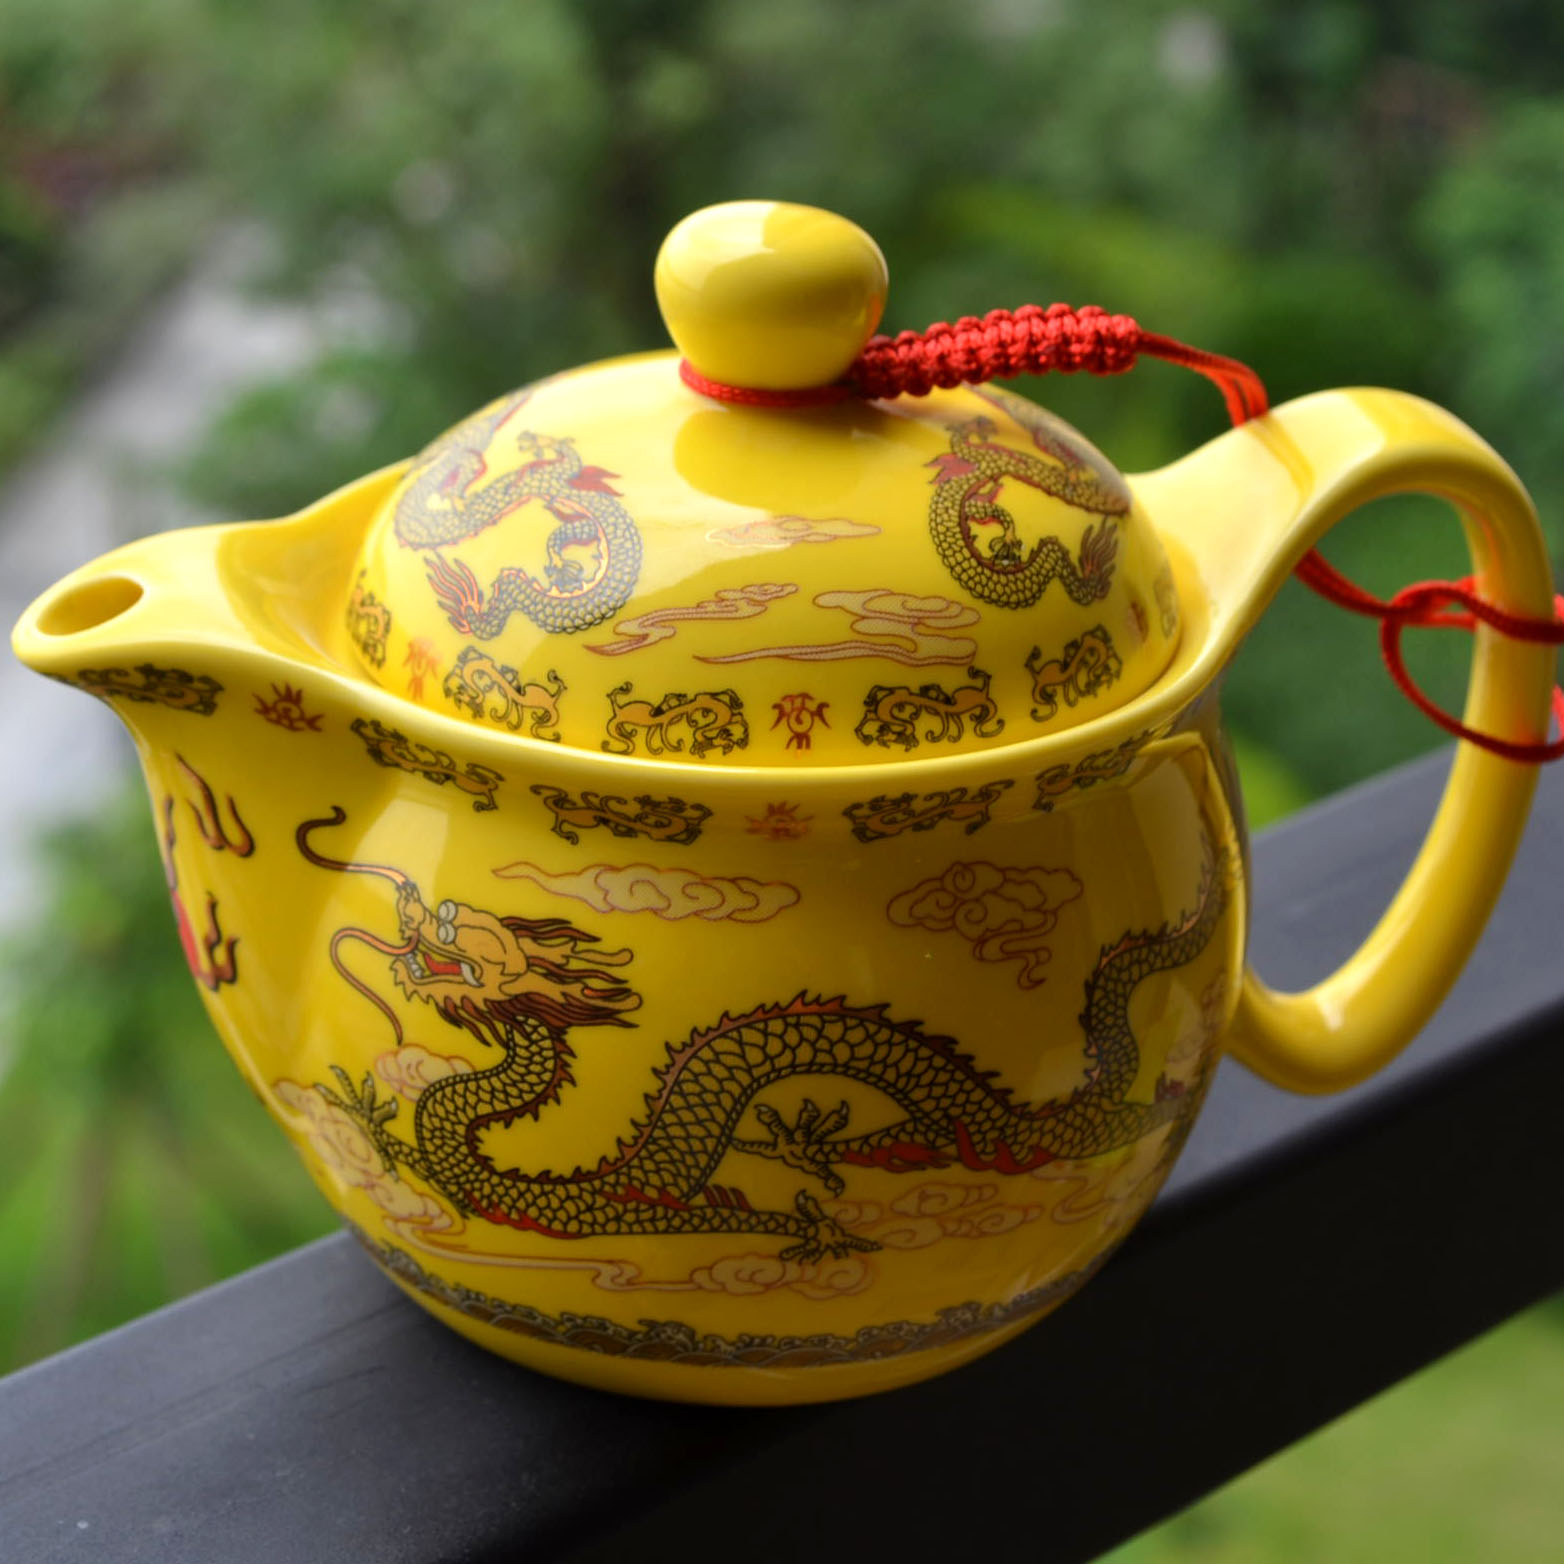 Teapot 410ml porcelain Chinese dragons pot stainless steel strainer infusion Flowers tea puer kettle ceramic teaware Home office